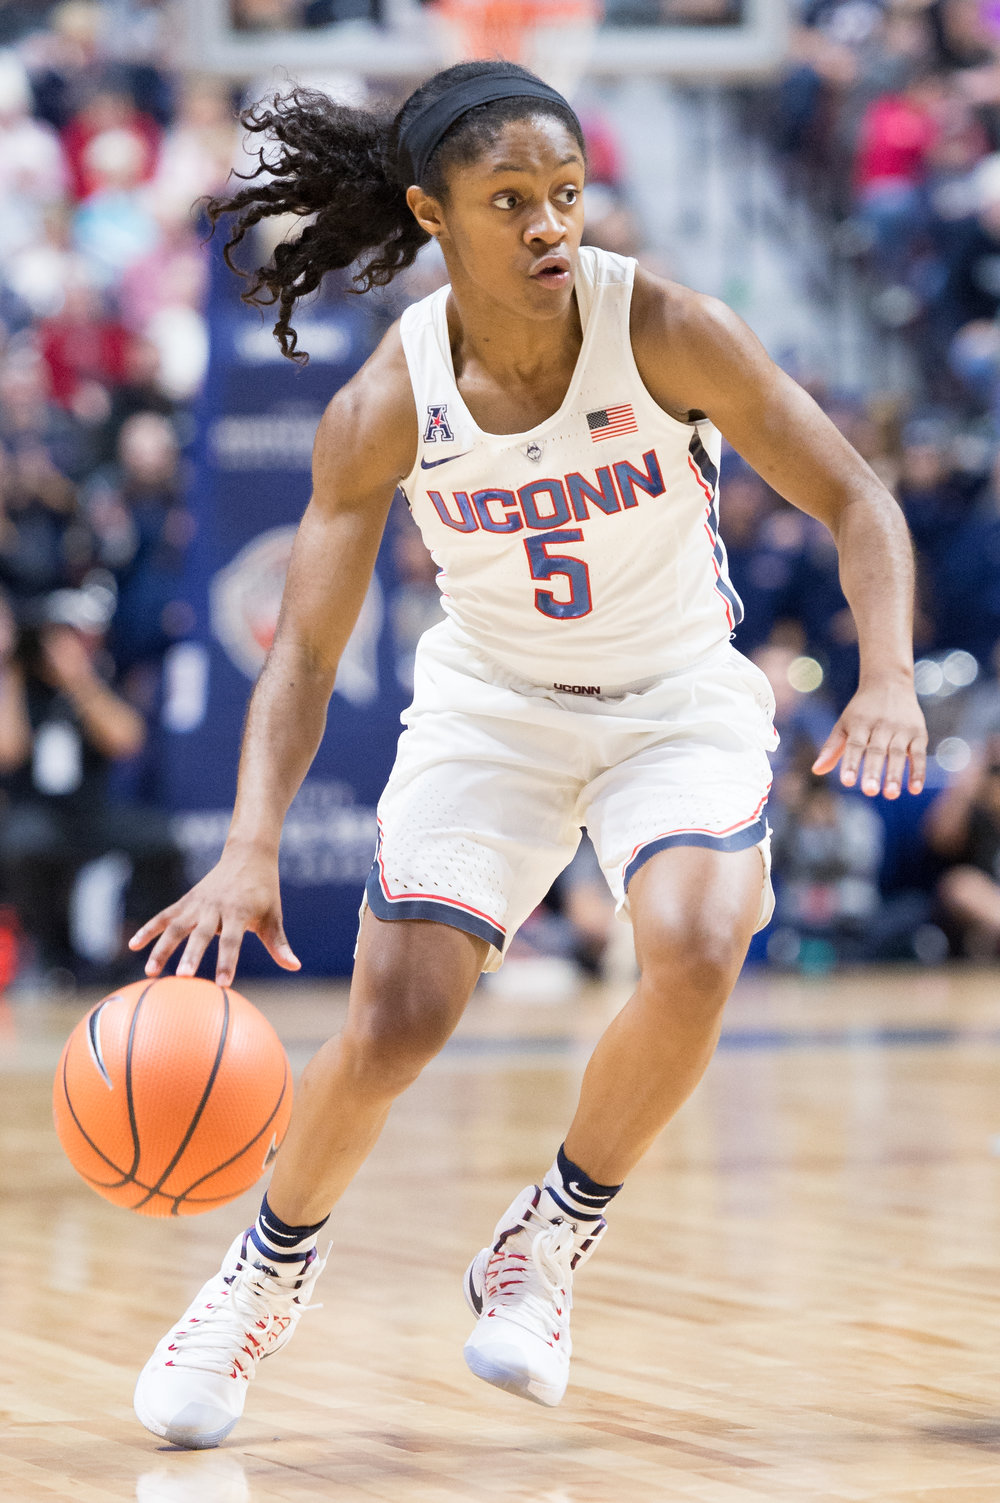 UConn Women's Basketball vs. Texas #1937 December 04, 2016.jpg